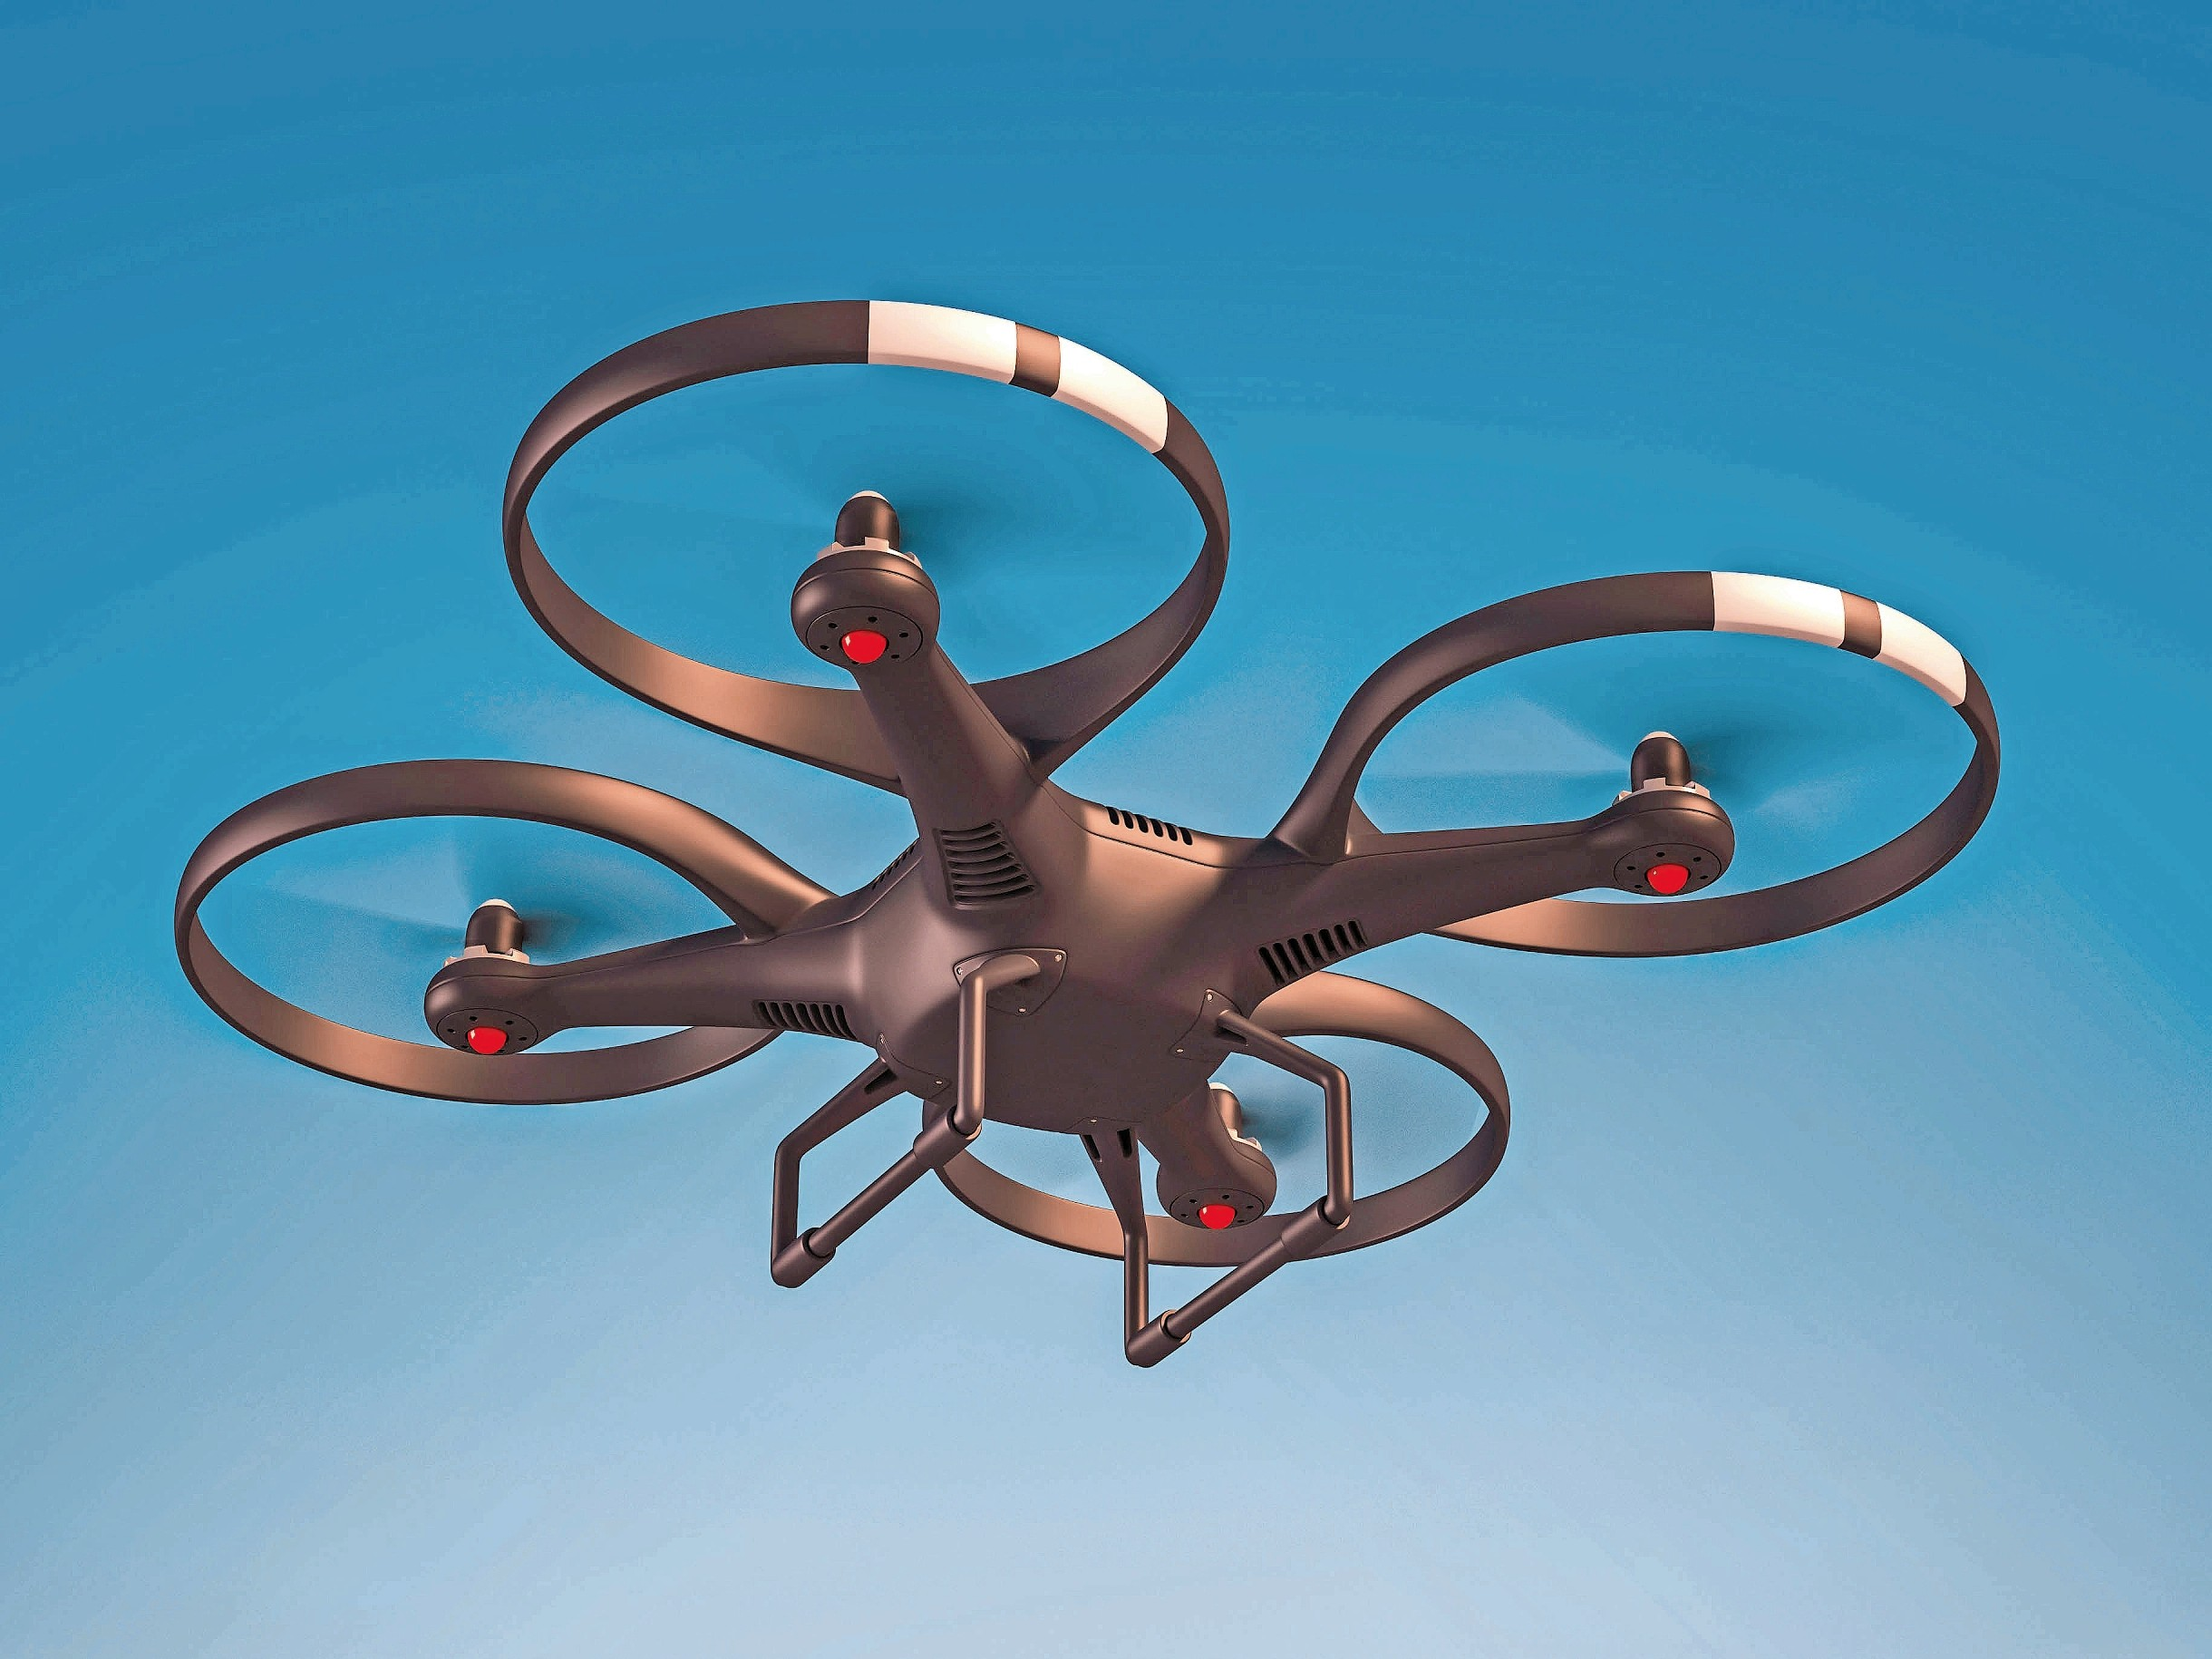 Some members of the town board say they believe drones need to be regulated when flying over town property.